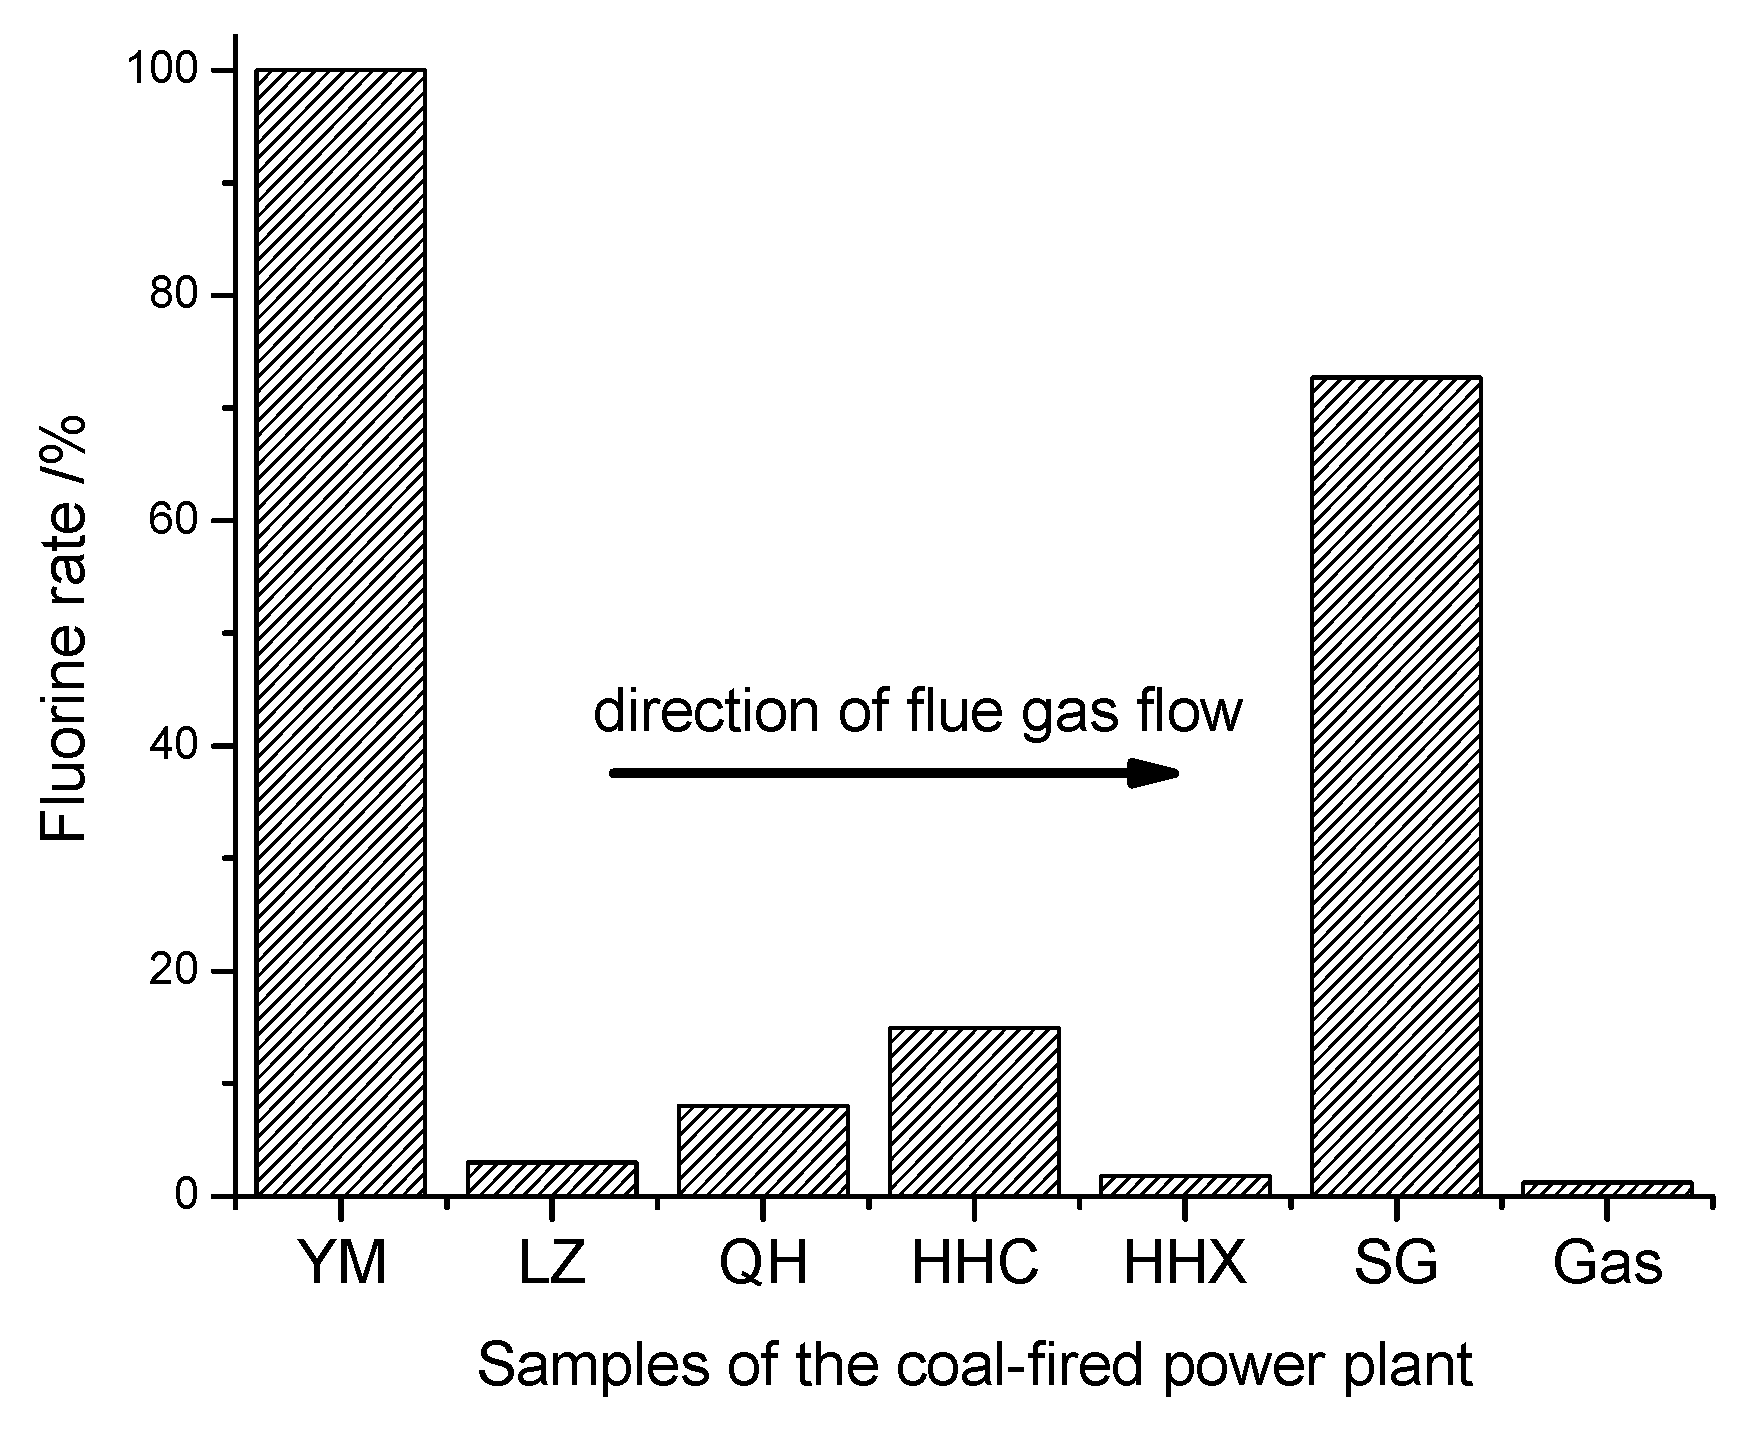 Minerals Free Full Text Modes Of Occurrence Fluorine By Coal Power Plant Diagram 05 00530 G005 1024